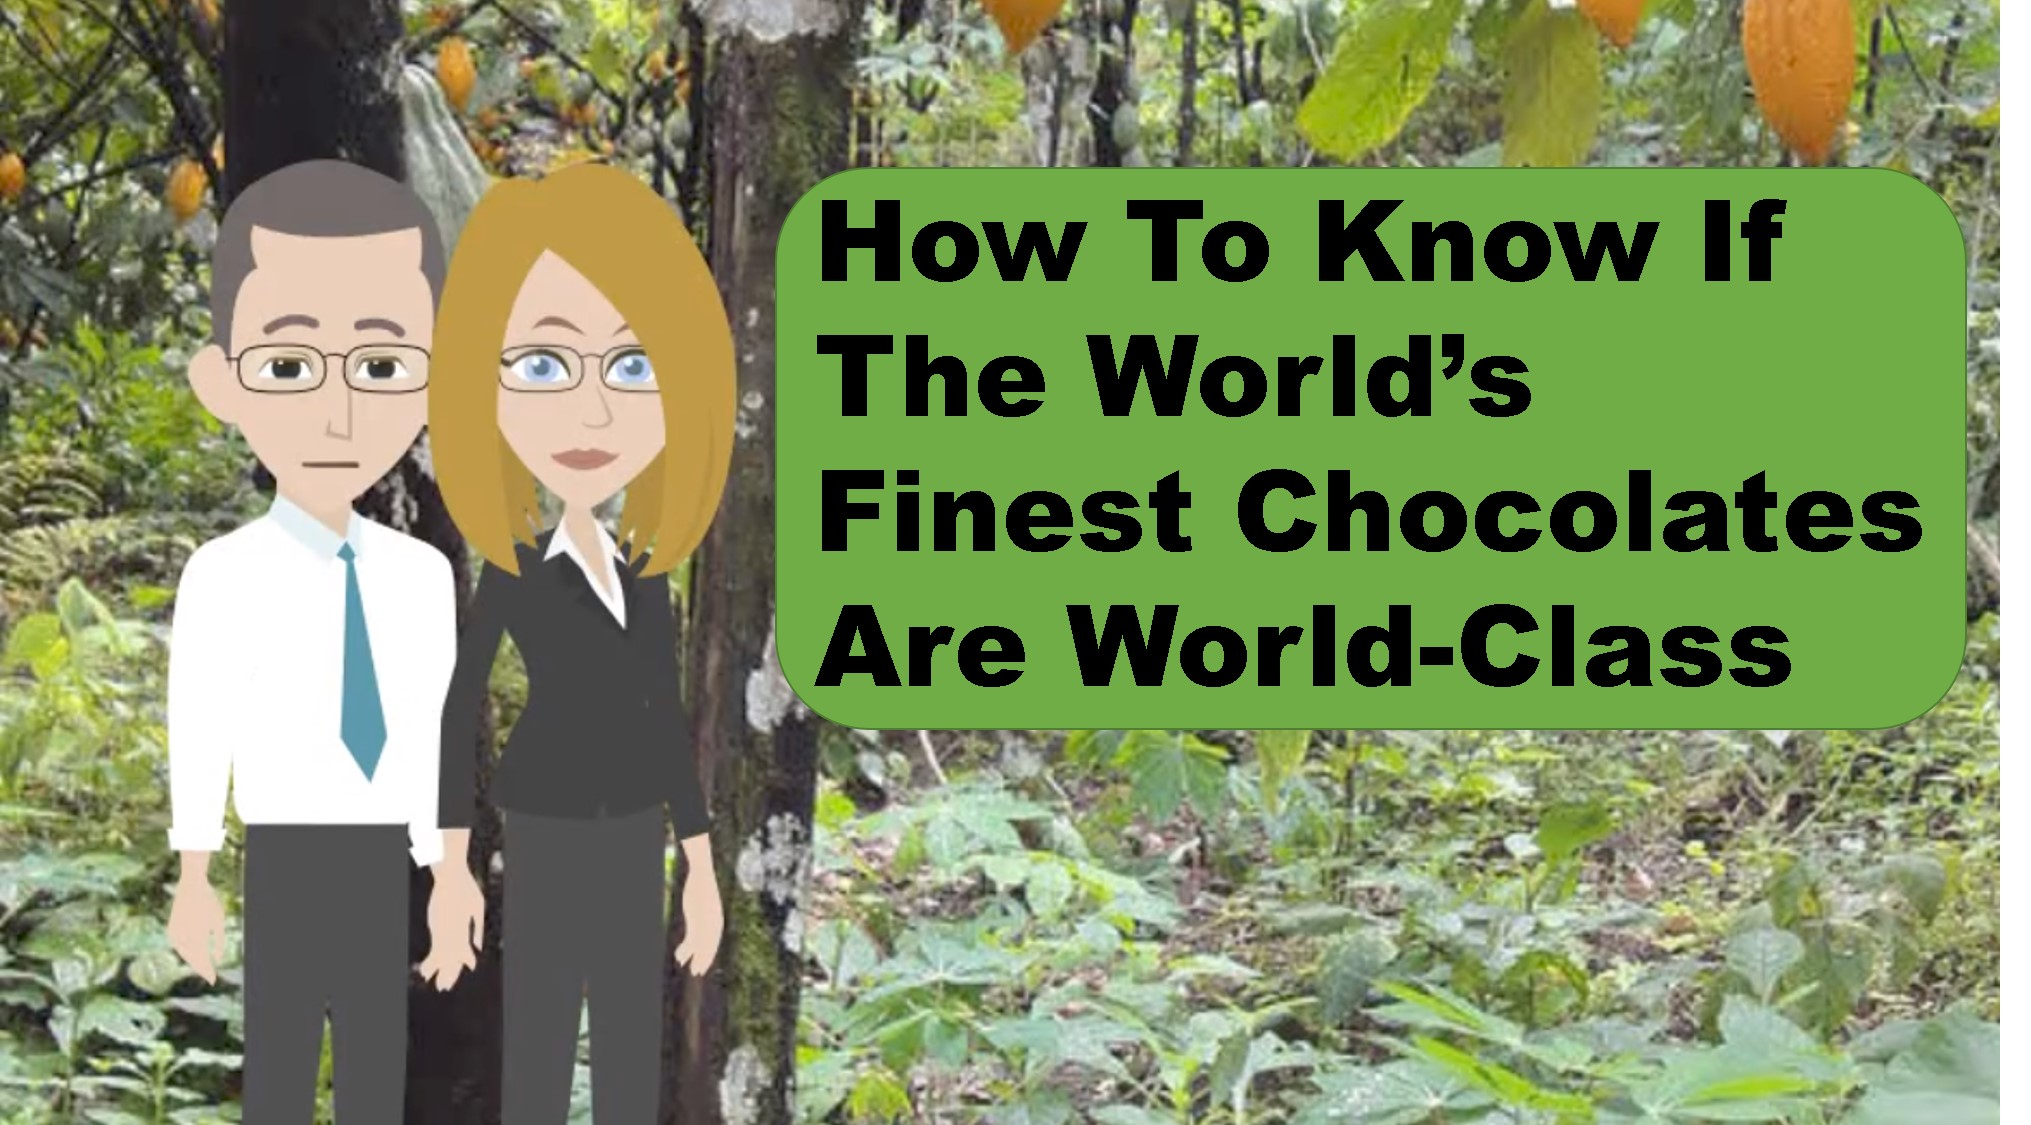 How To Know If The World's Finest Chocolates Are World-Class